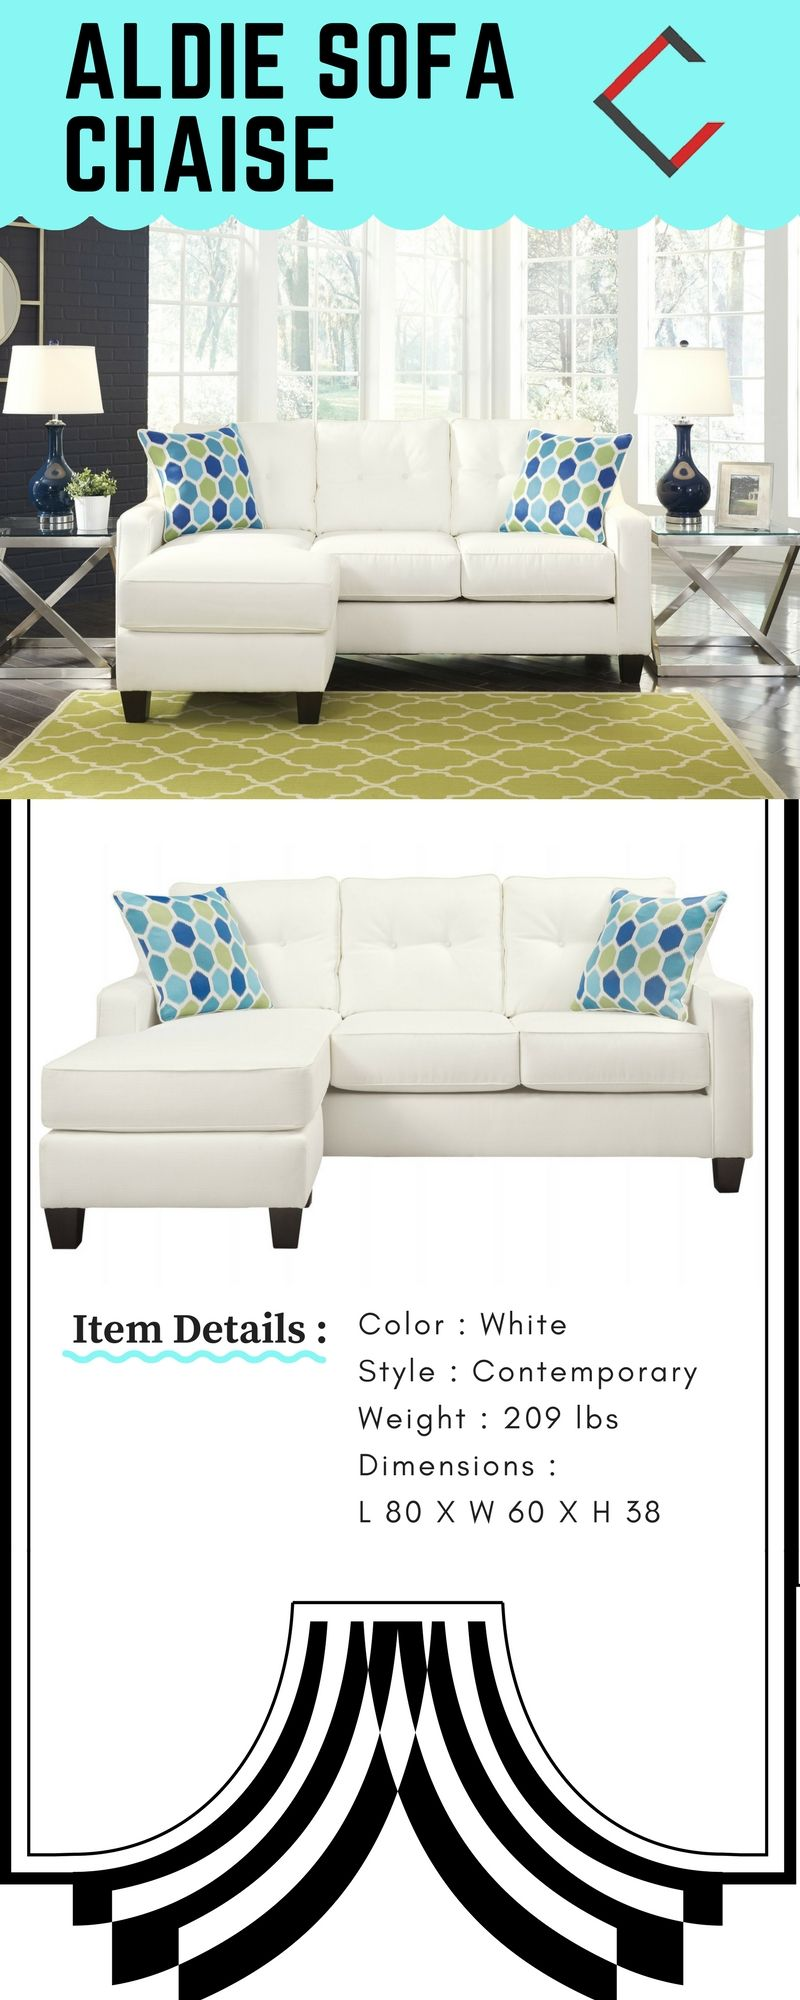 Peachy Aldie Nuvella Contemporary White Fabric Hardwood Sofa Chaise Gmtry Best Dining Table And Chair Ideas Images Gmtryco